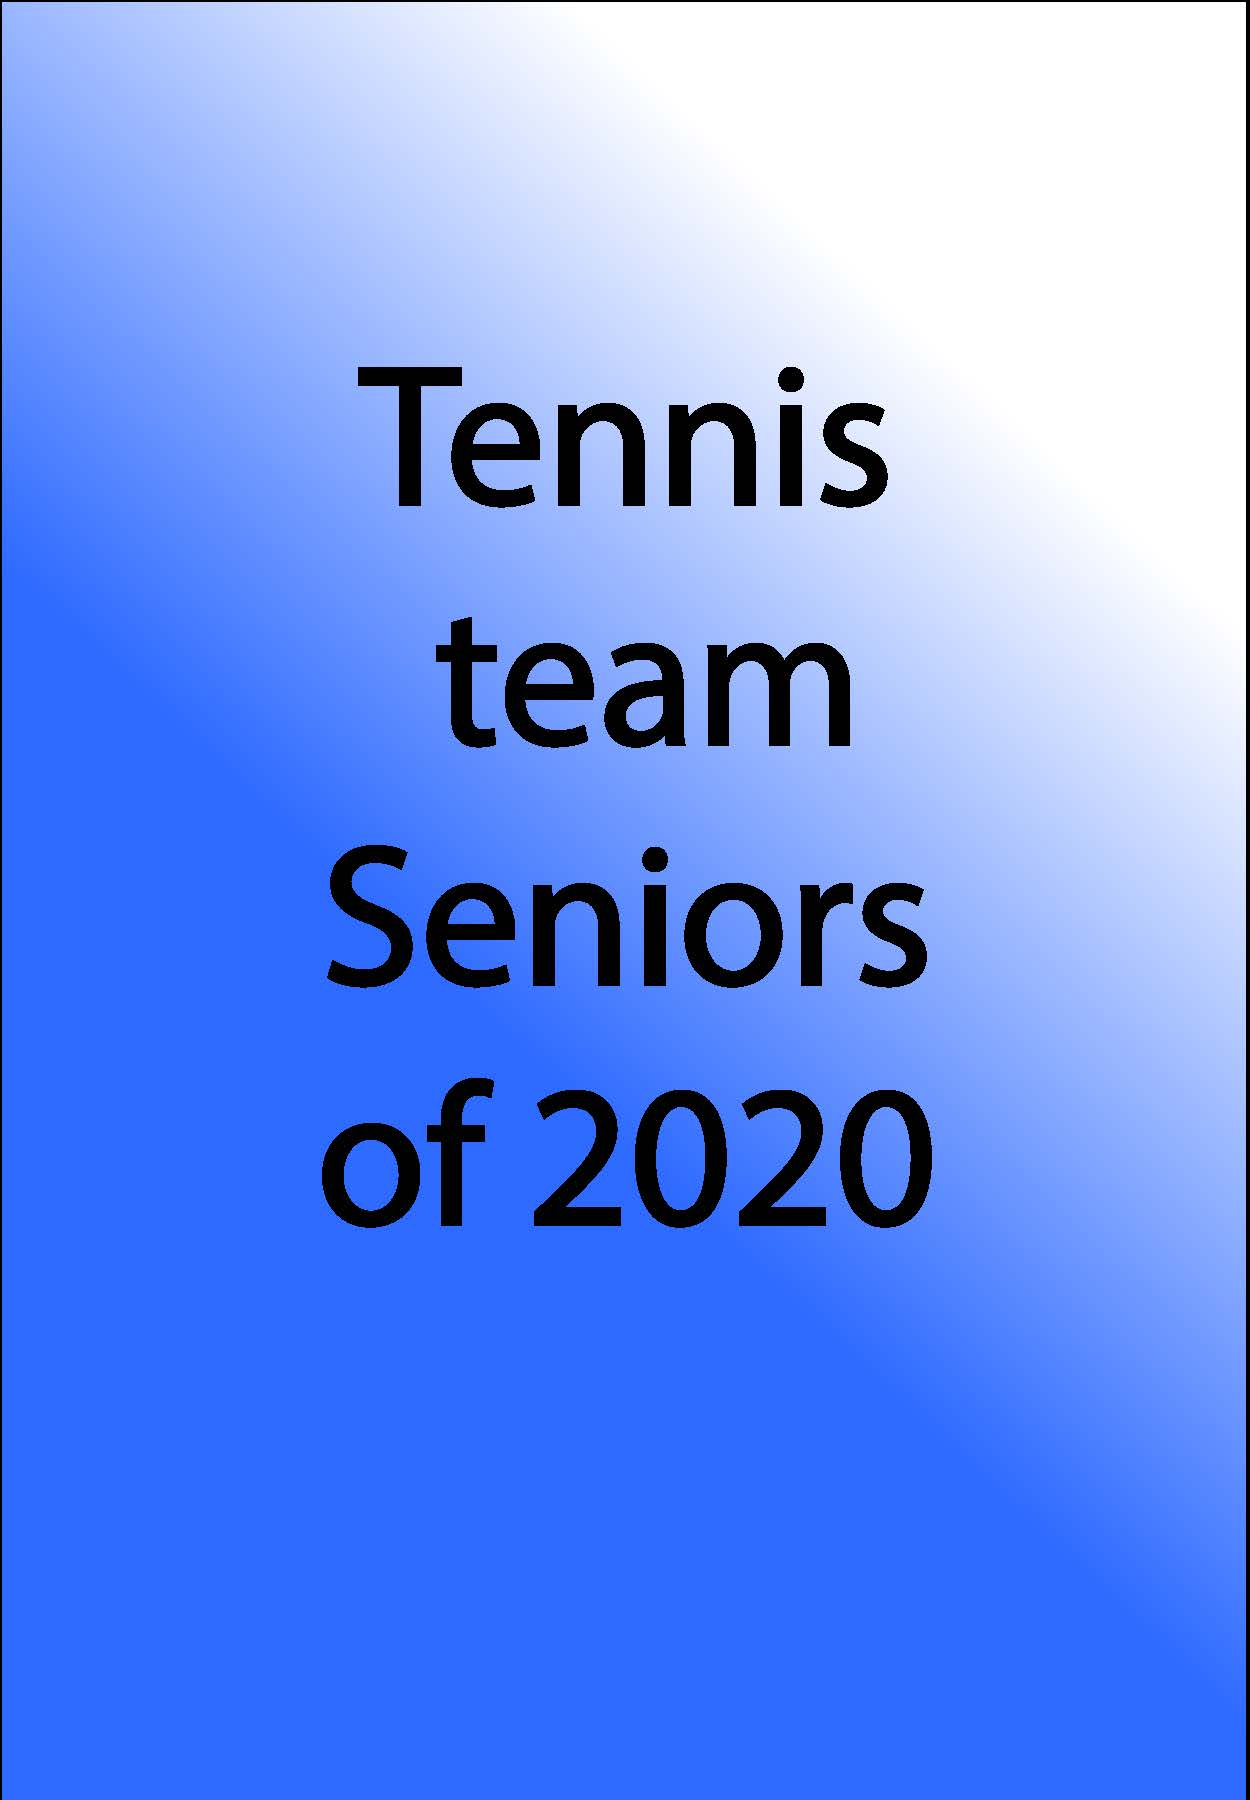 Tennis Team Logo